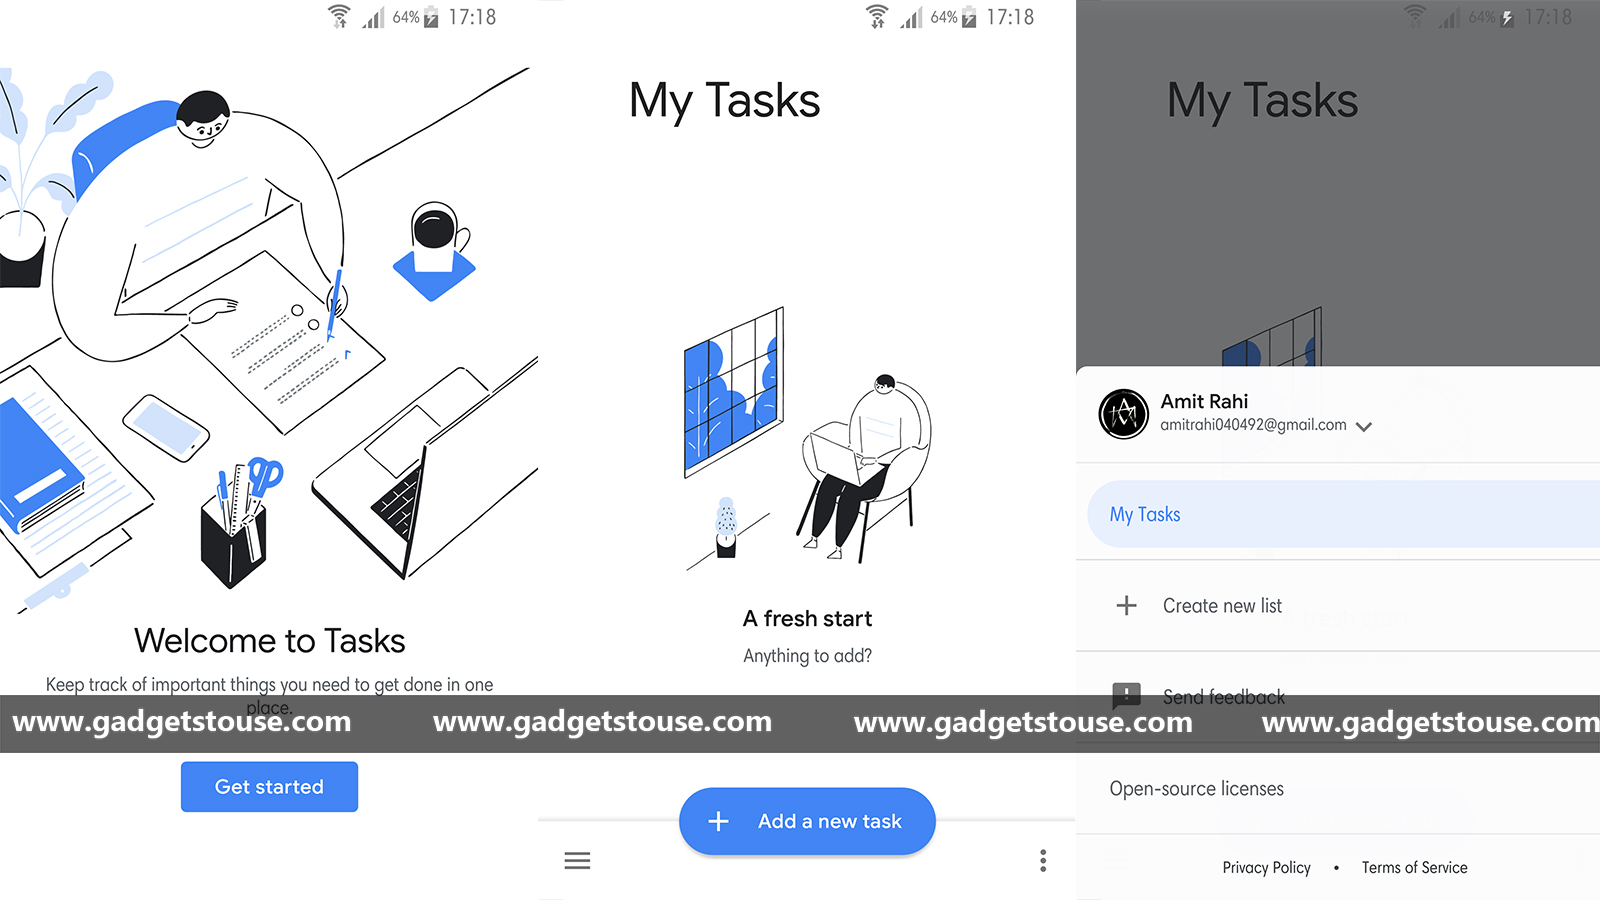 Google releases the Google Tasks app on Android and iOS